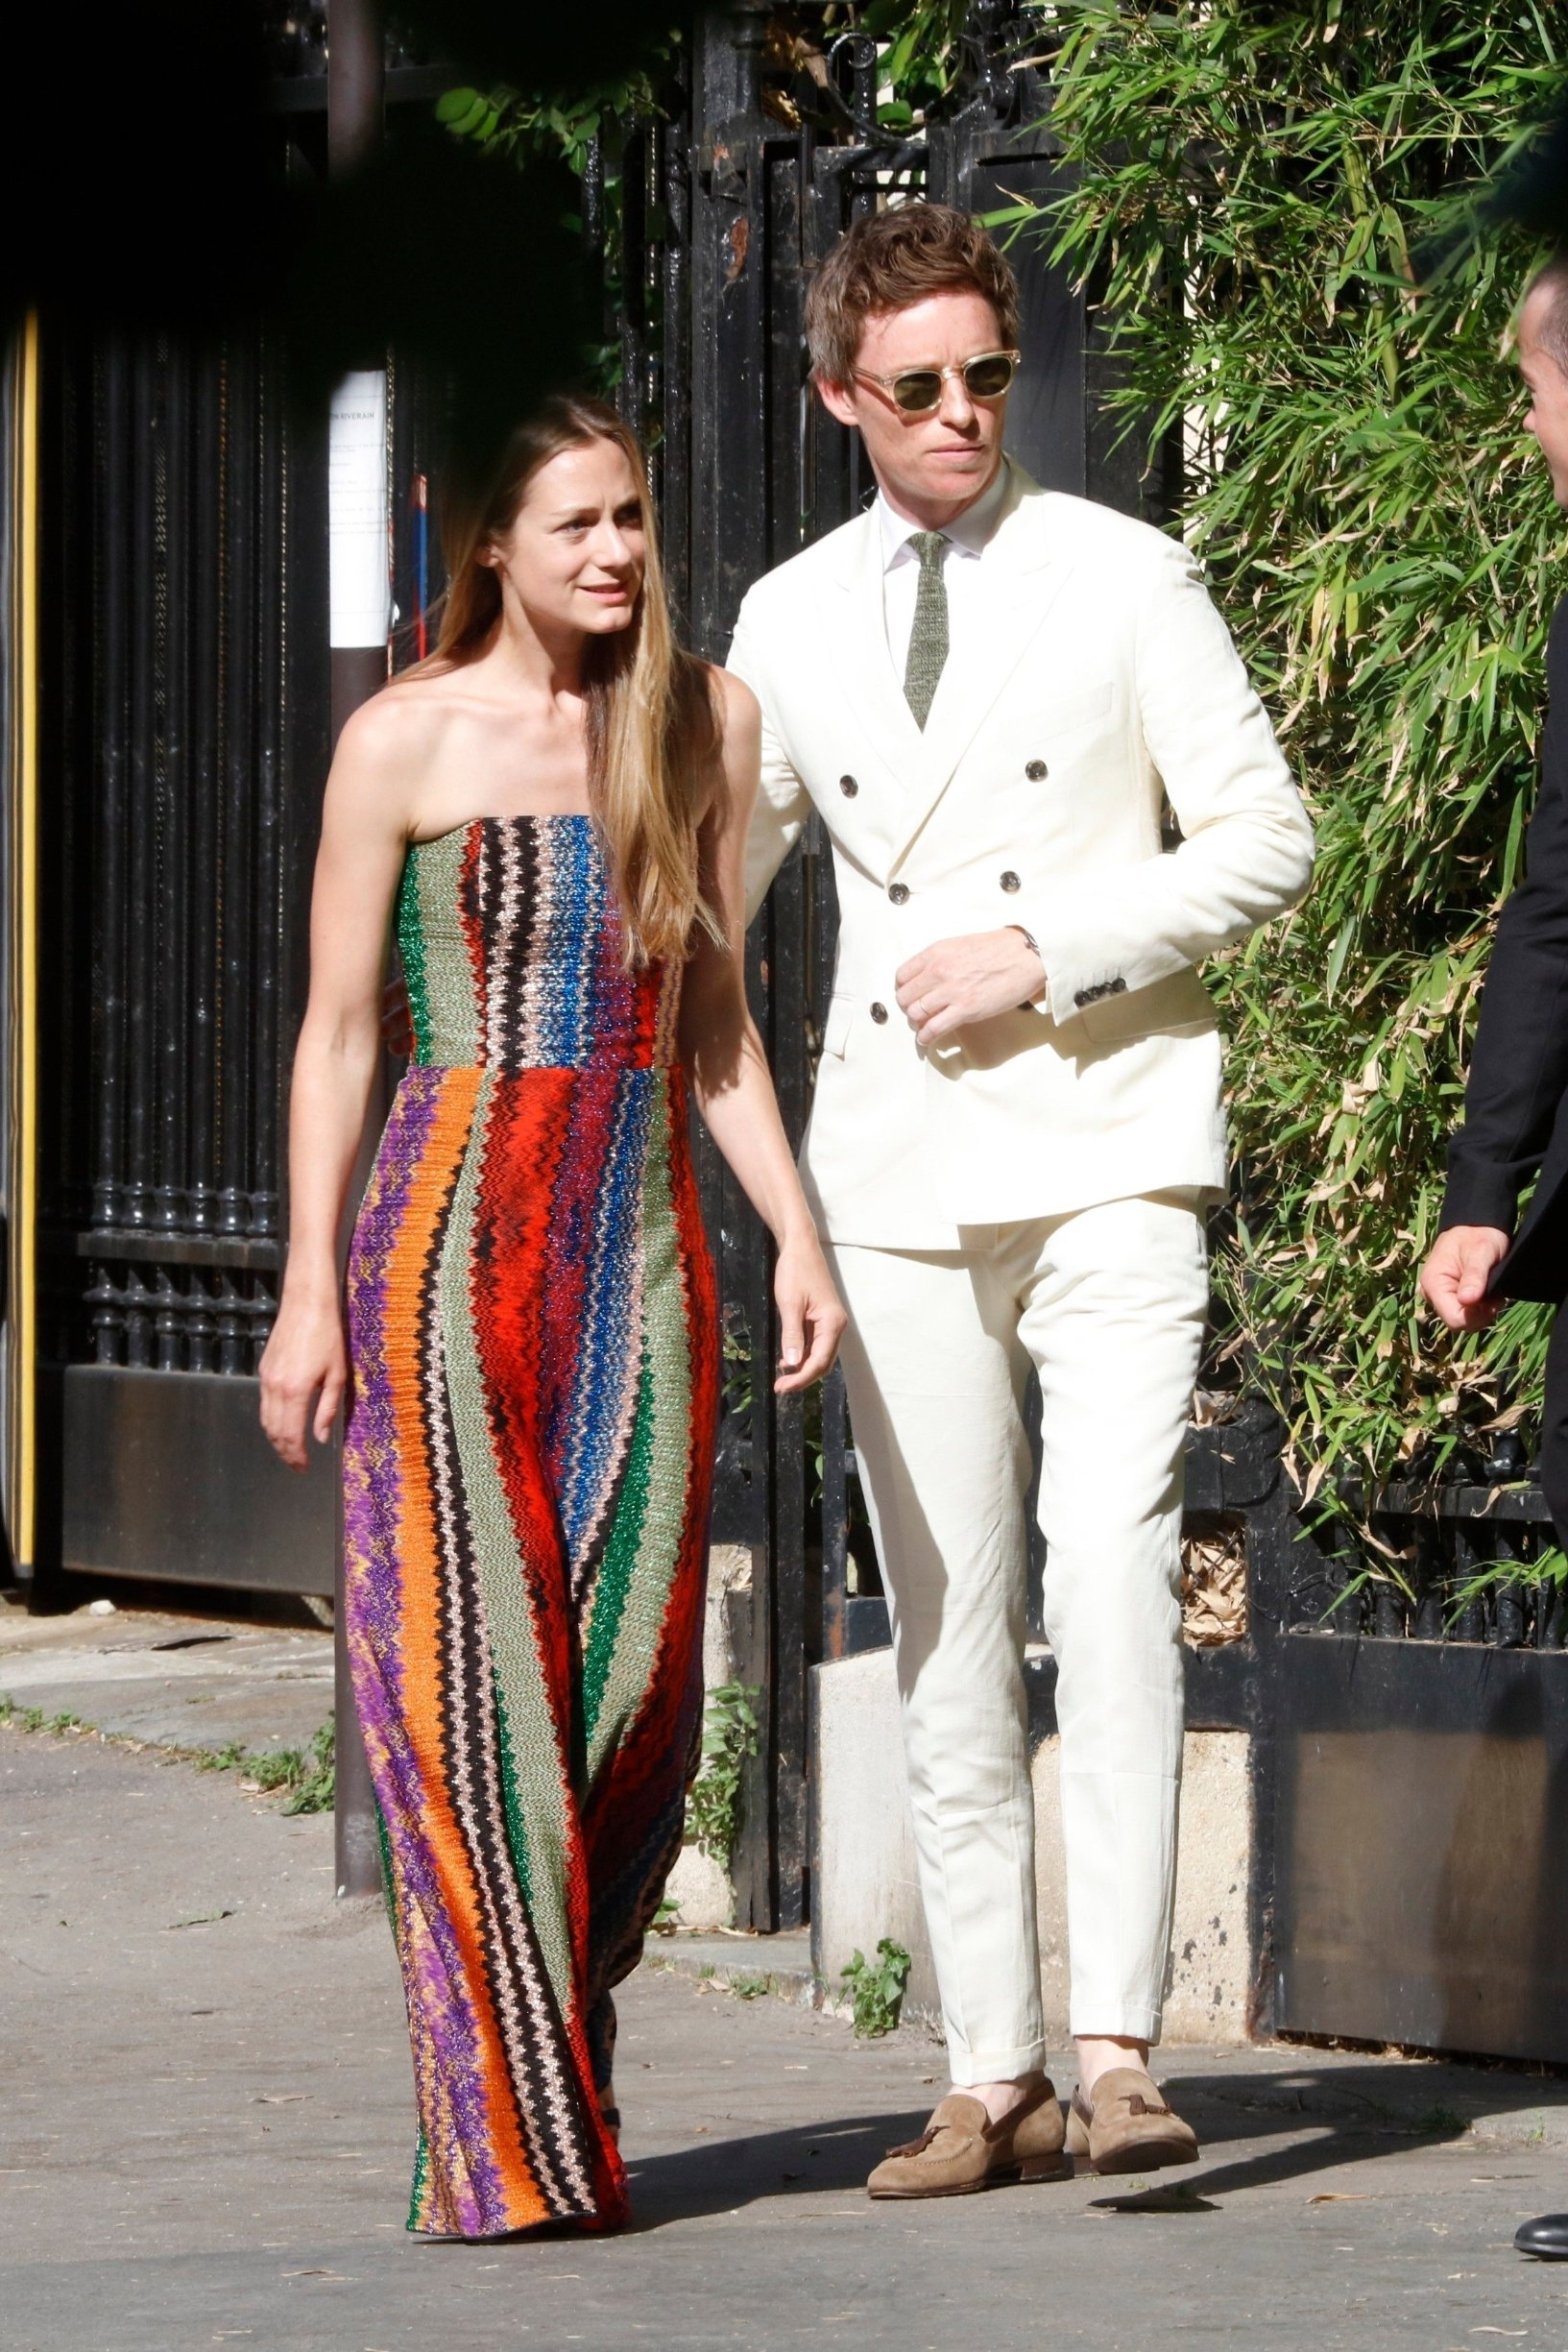 Paris, FRANCE  - Celebrates arrive to the Zoe Kravitz and Karl Glusman wedding reception at the Lenny Kravitz house in Paris.  *UK Clients - Pictures Containing Children Please Pixelate Face Prior To Publication*, Image: 452652045, License: Rights-managed, Restrictions: , Model Release: no, Credit line: Profimedia, Backgrid UK